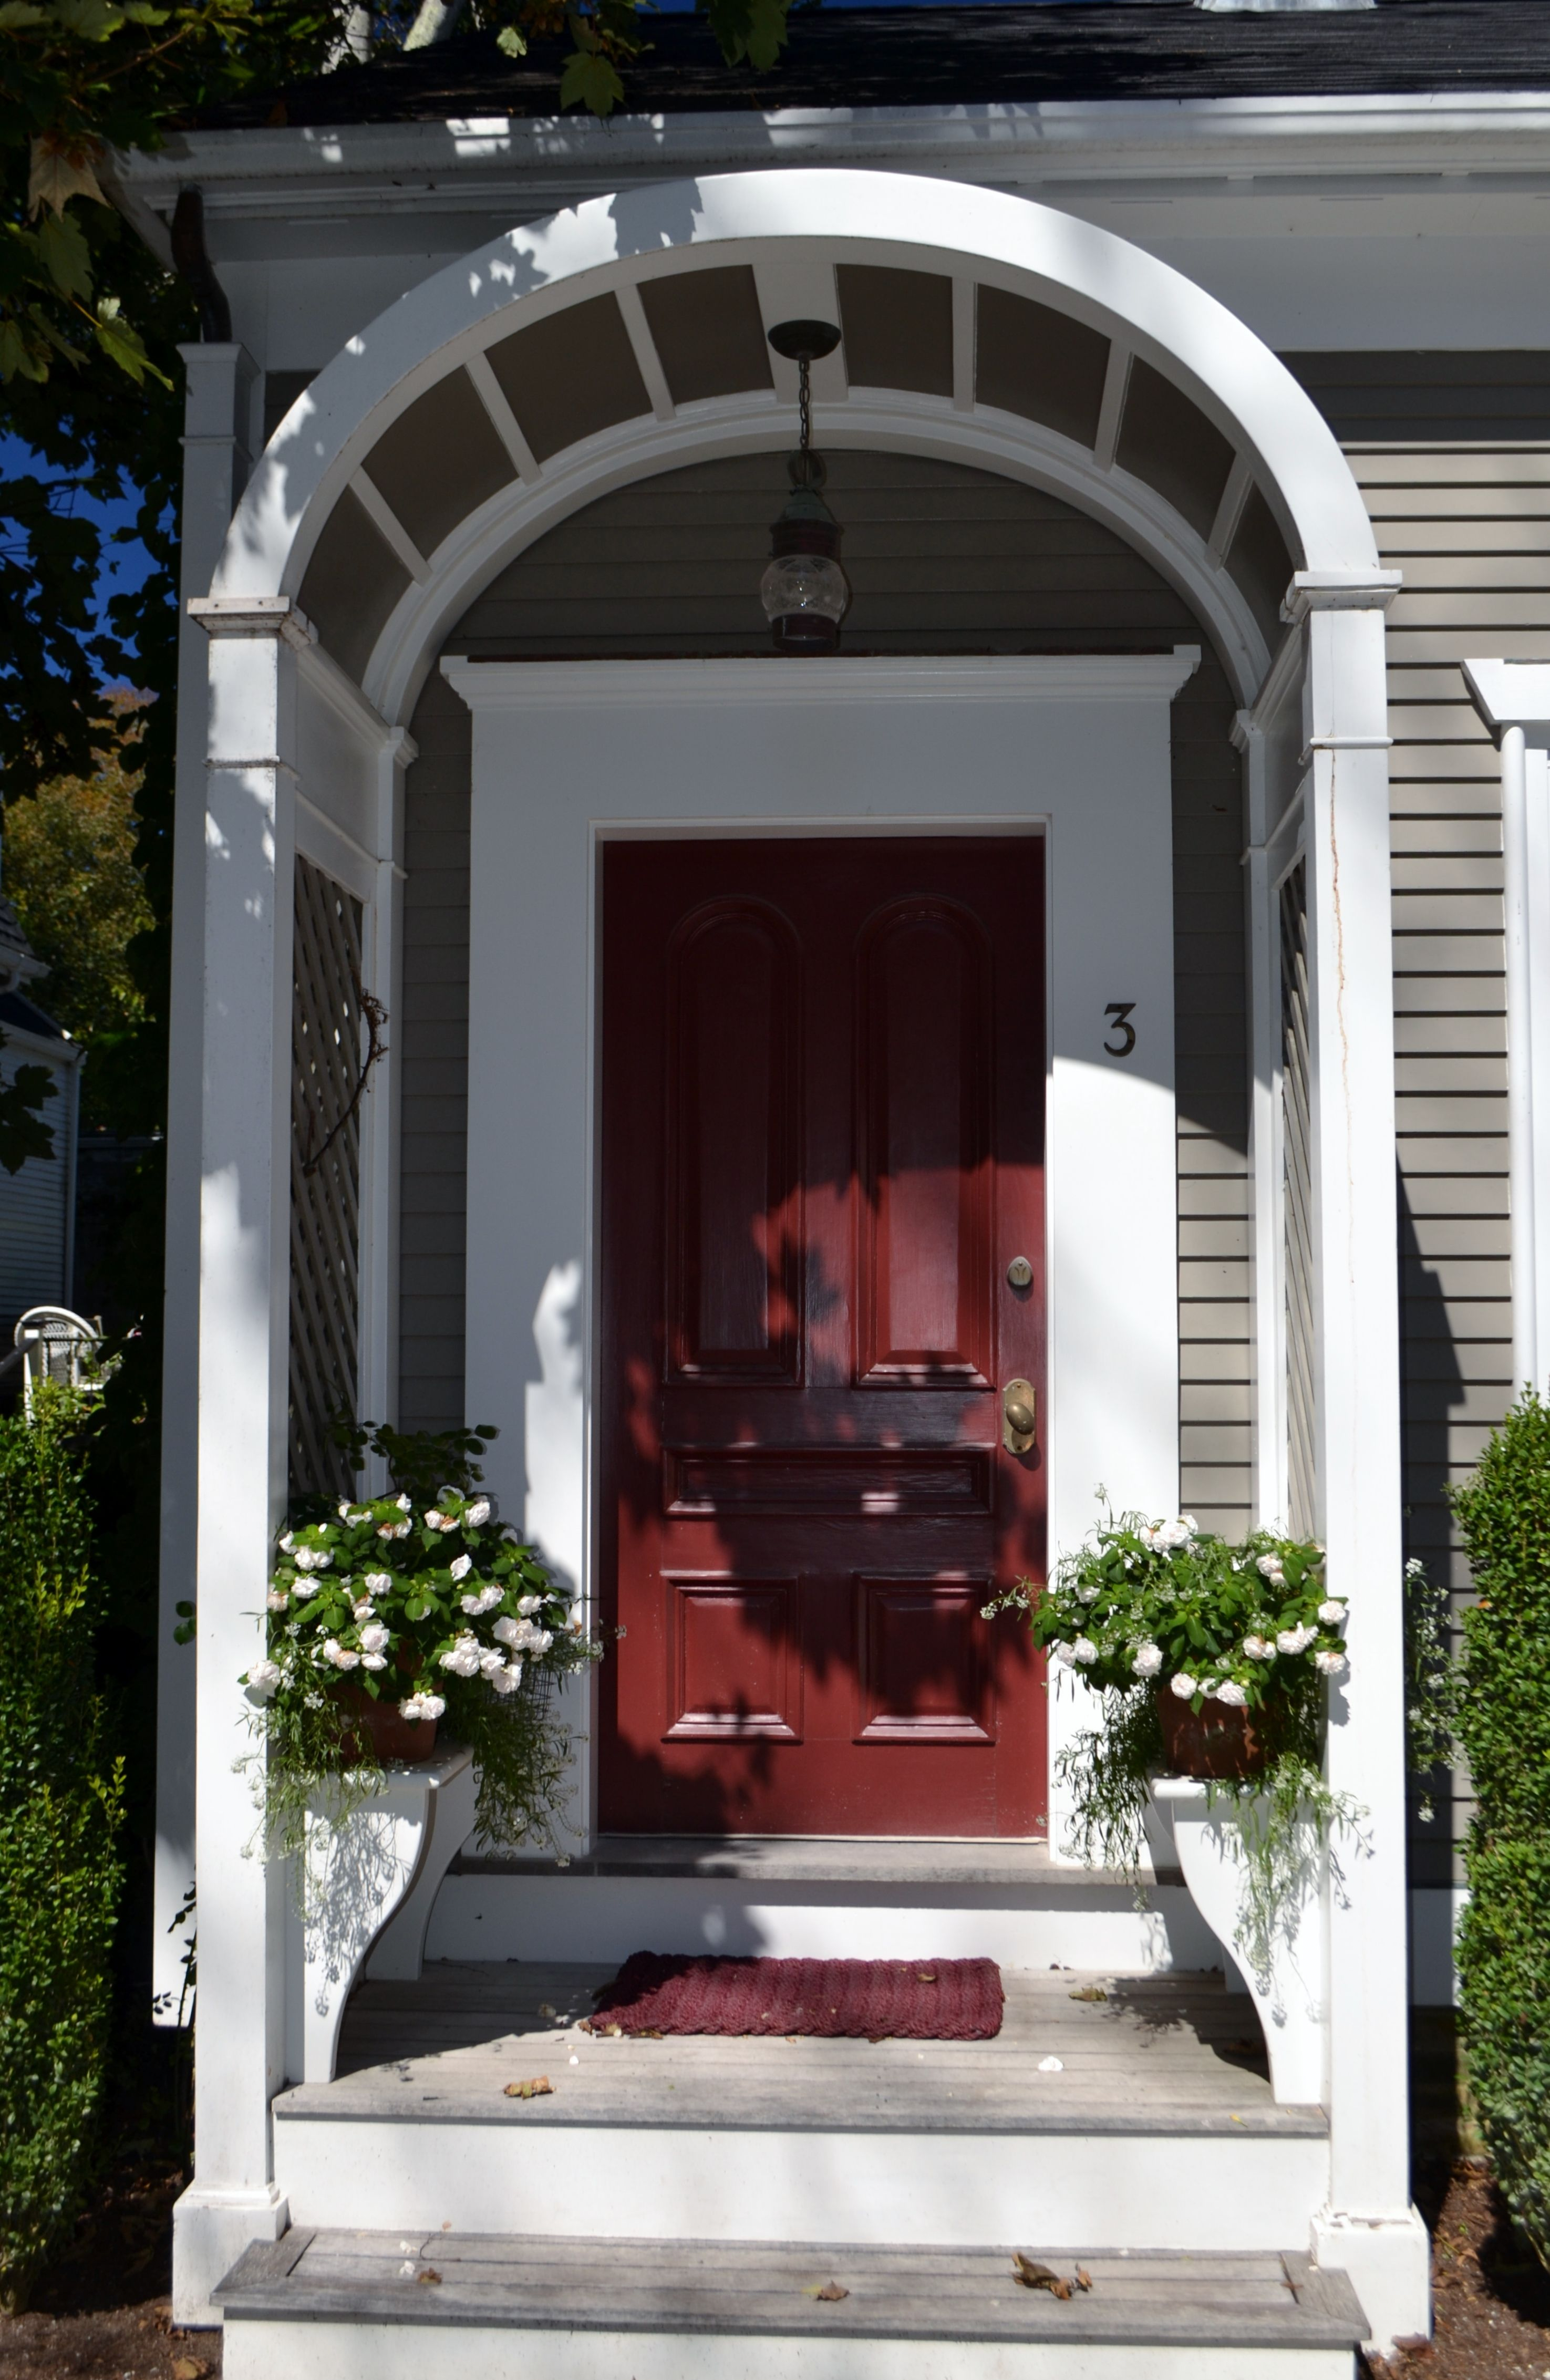 Such charming doors on the homes of Nantucket